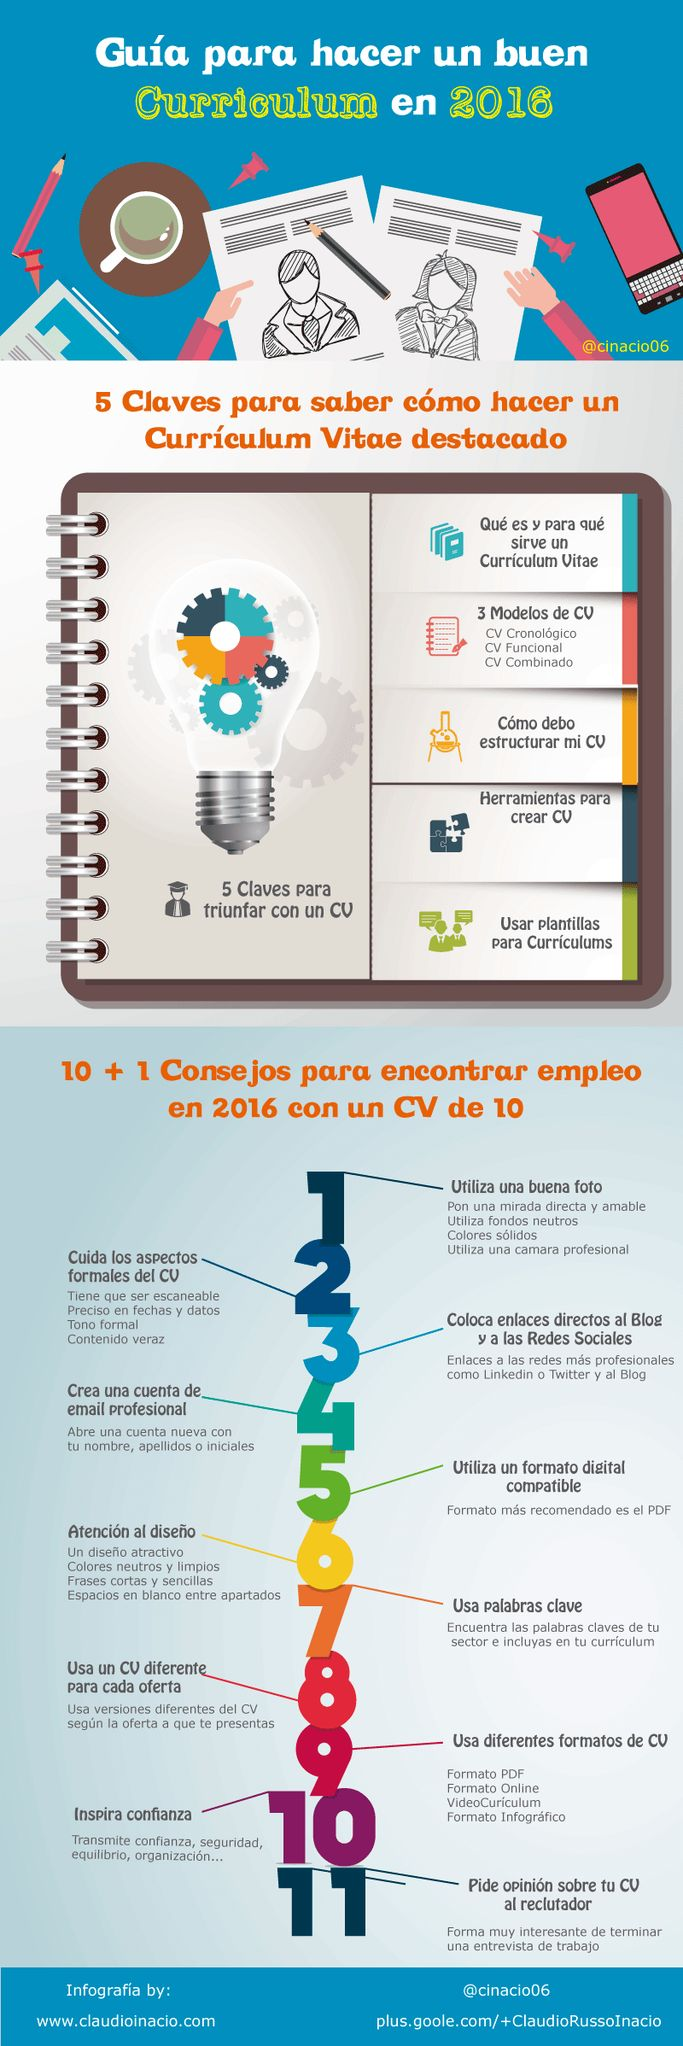 113 best CV images on Pinterest | Curriculum, Resume and Resume ...